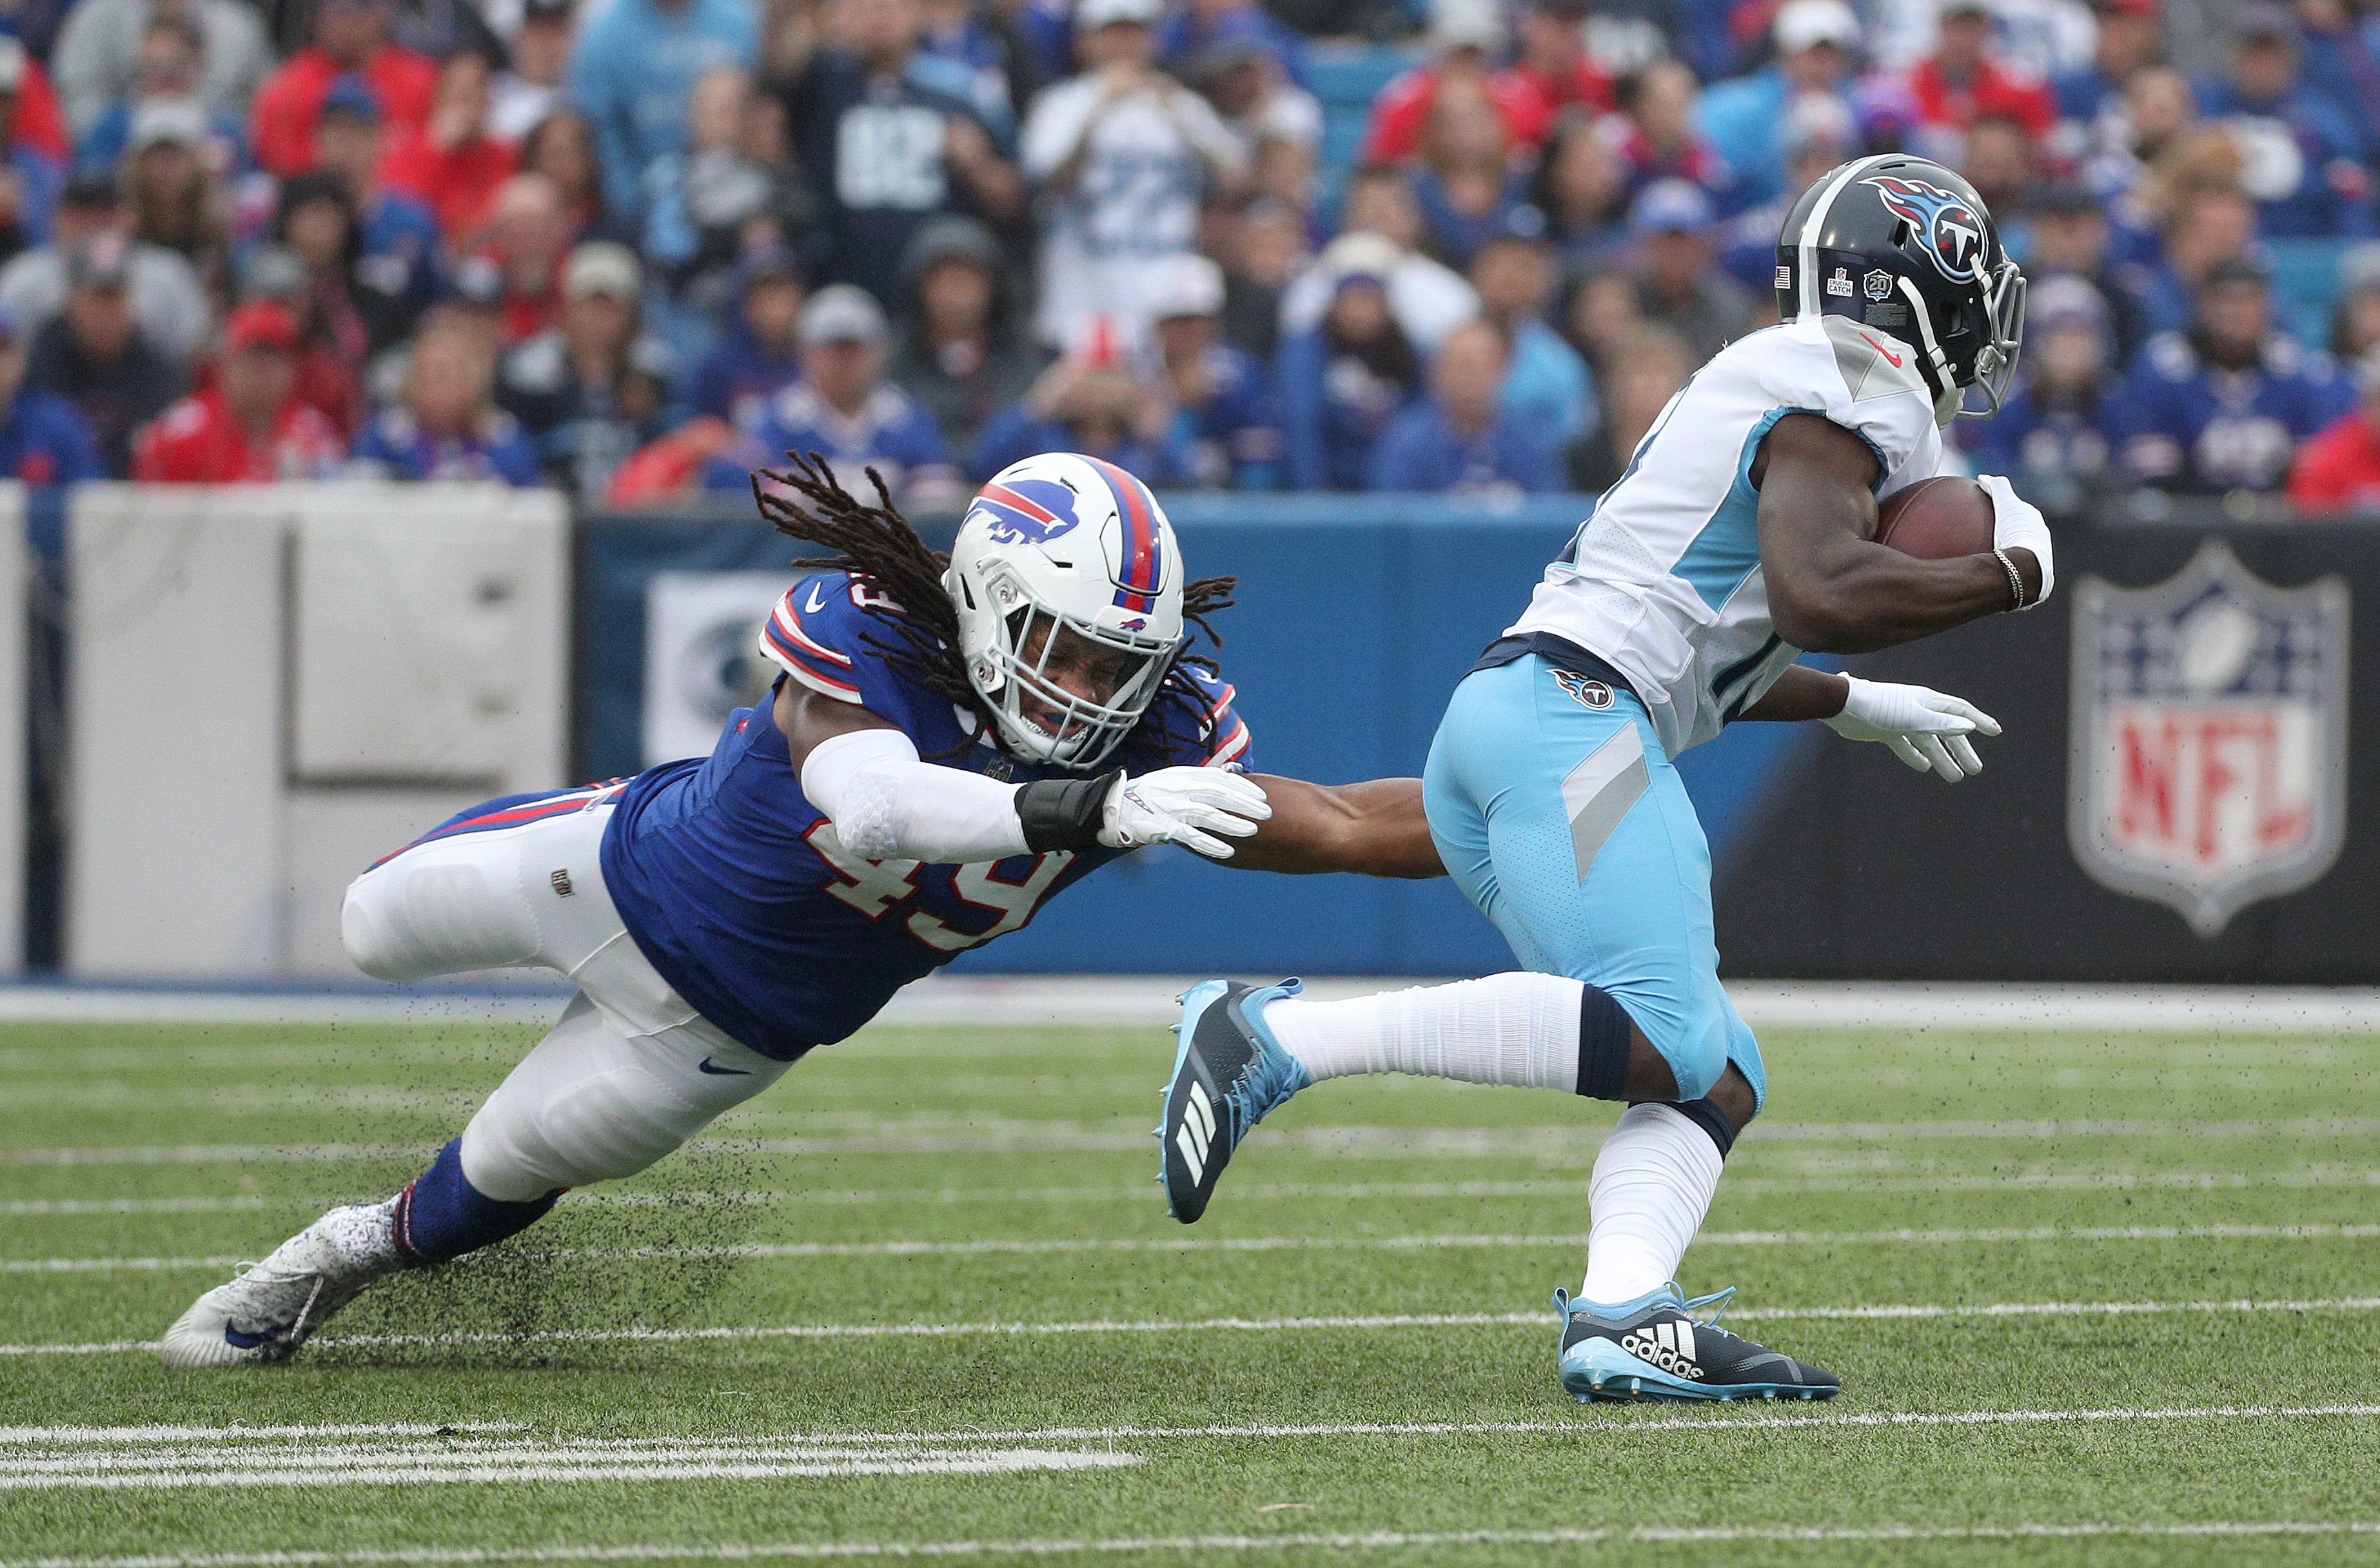 Still one of the youngest players in the NFL, Tremaine Edmunds poised to make a leap